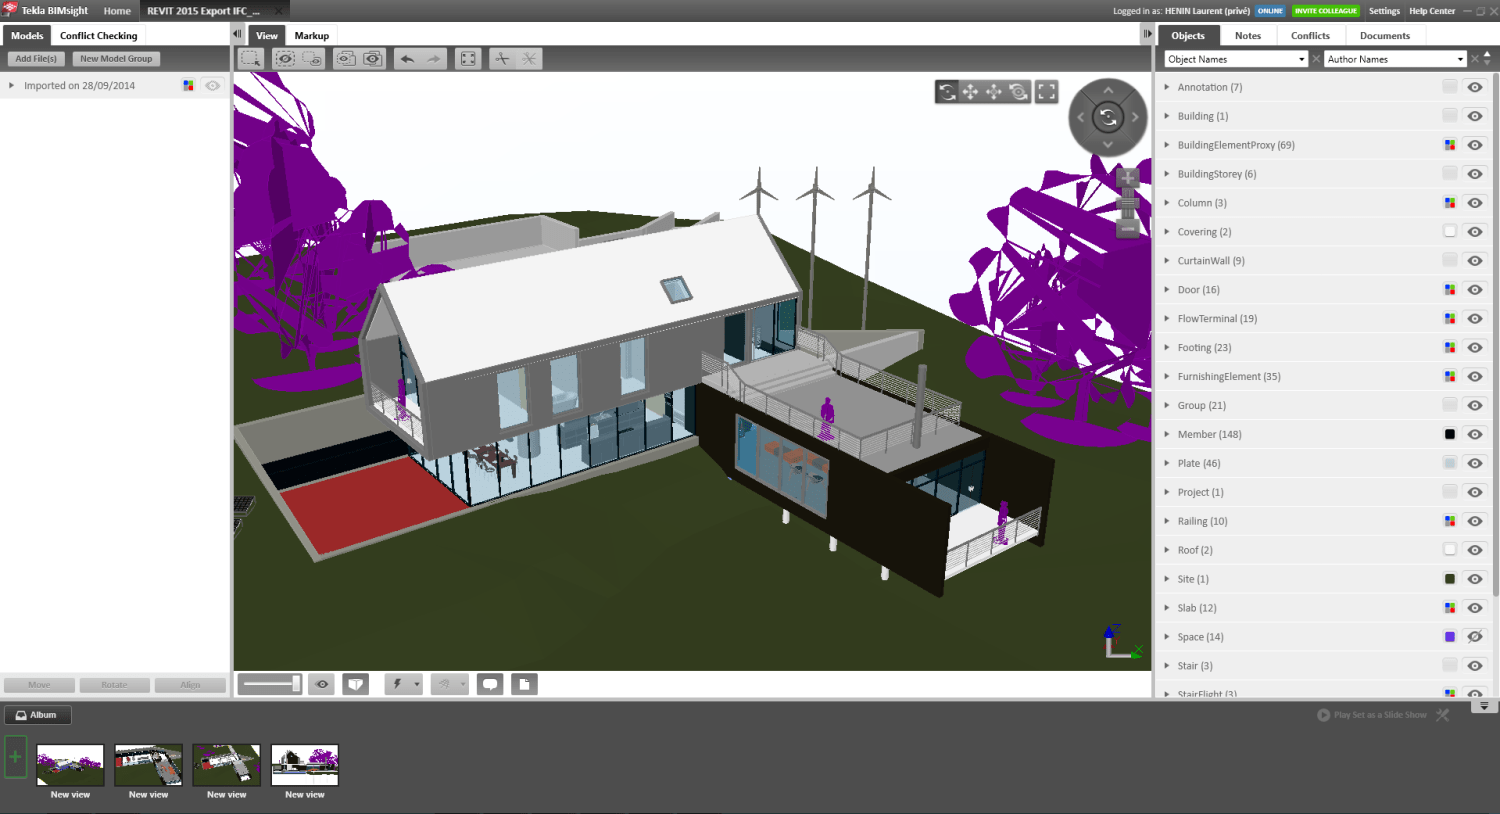 Autodesk_Revit_2015_17_tekla bimsight